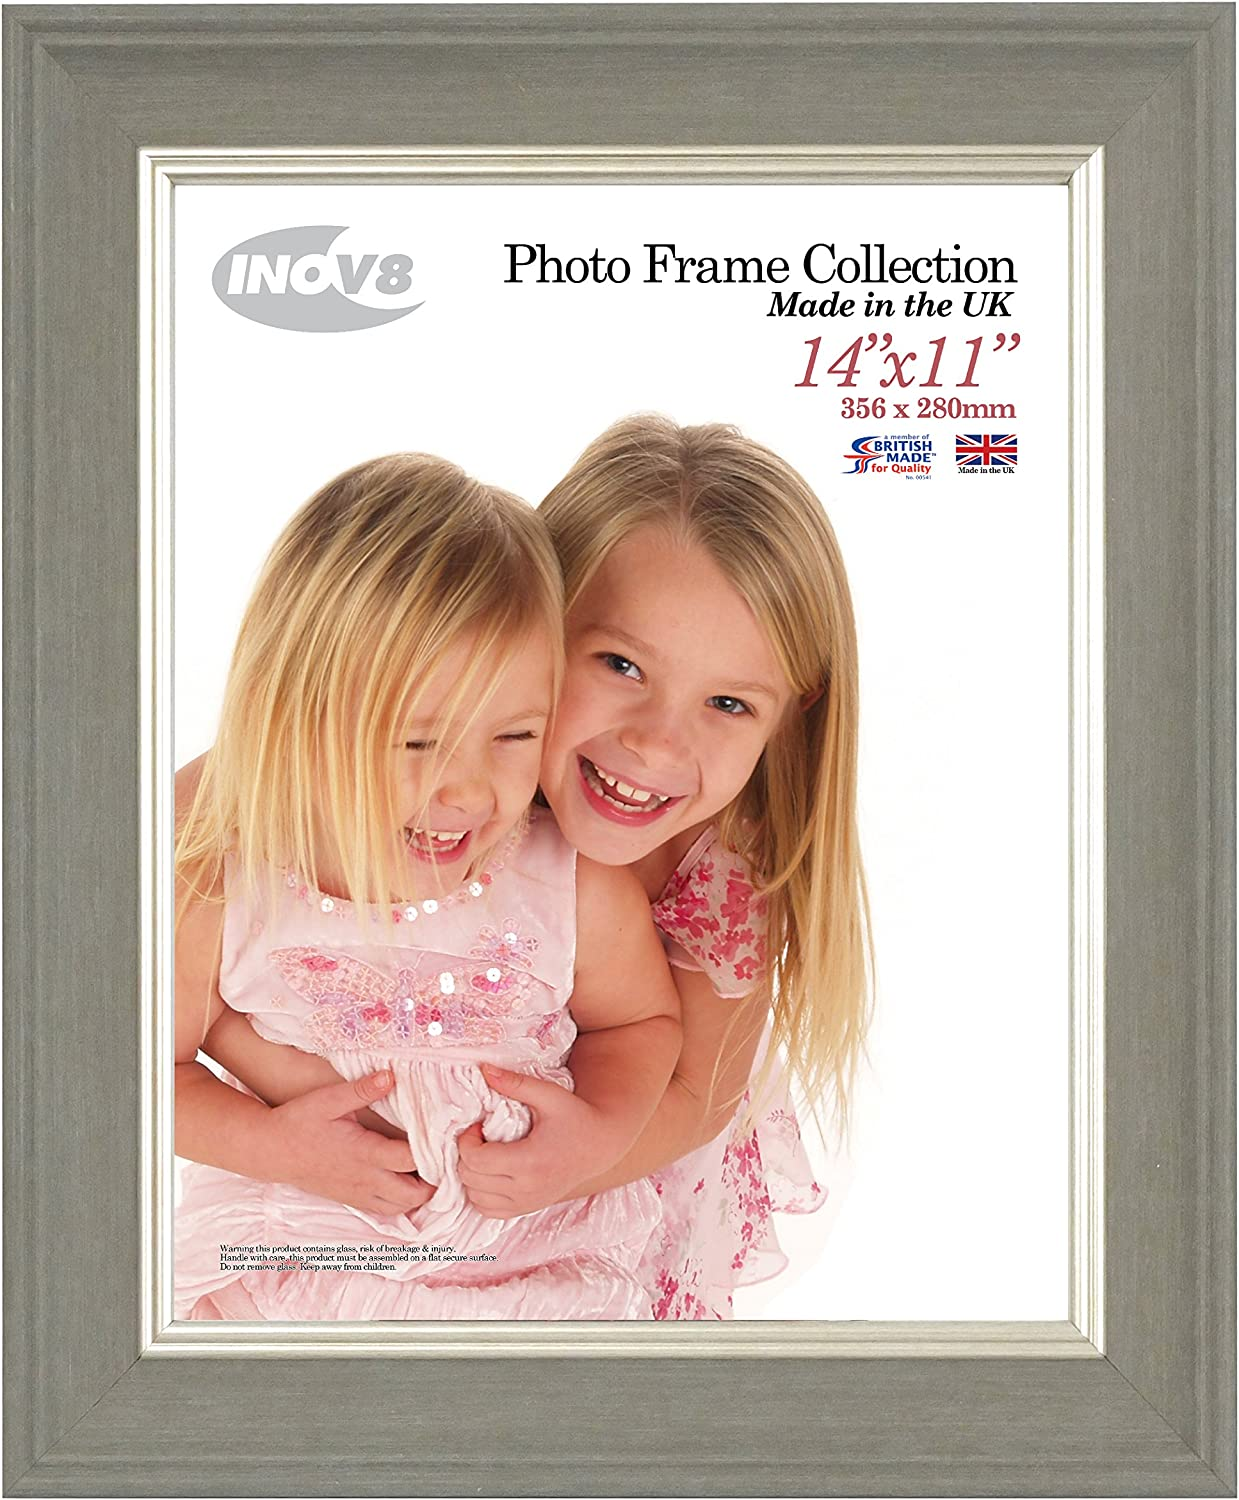 Dark Grey Large Inov8 Framing Photo Frame